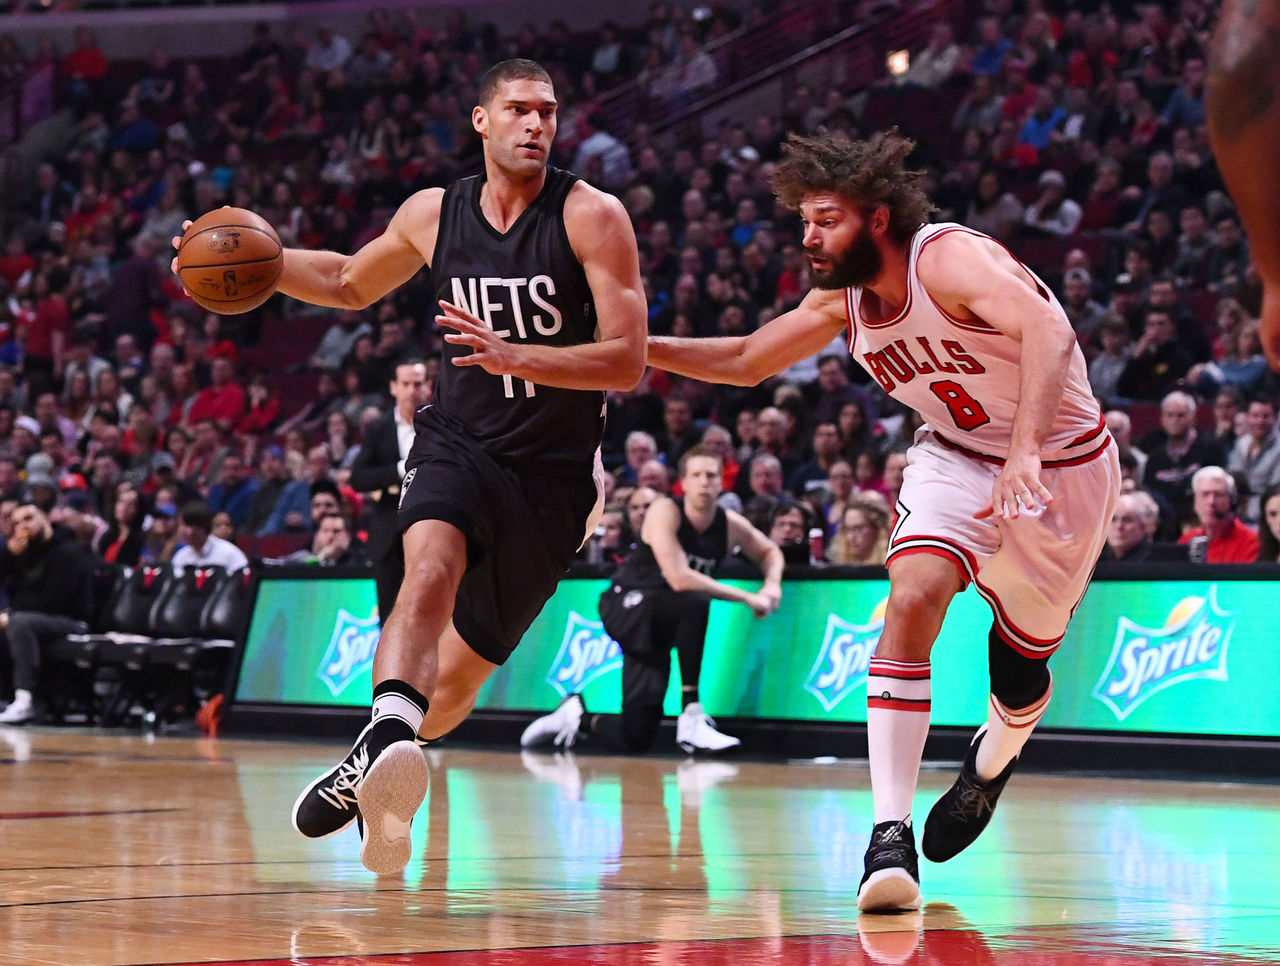 Cropped 2016 12 29t020246z 379058778 nocid rtrmadp 3 nba brooklyn nets at chicago bulls